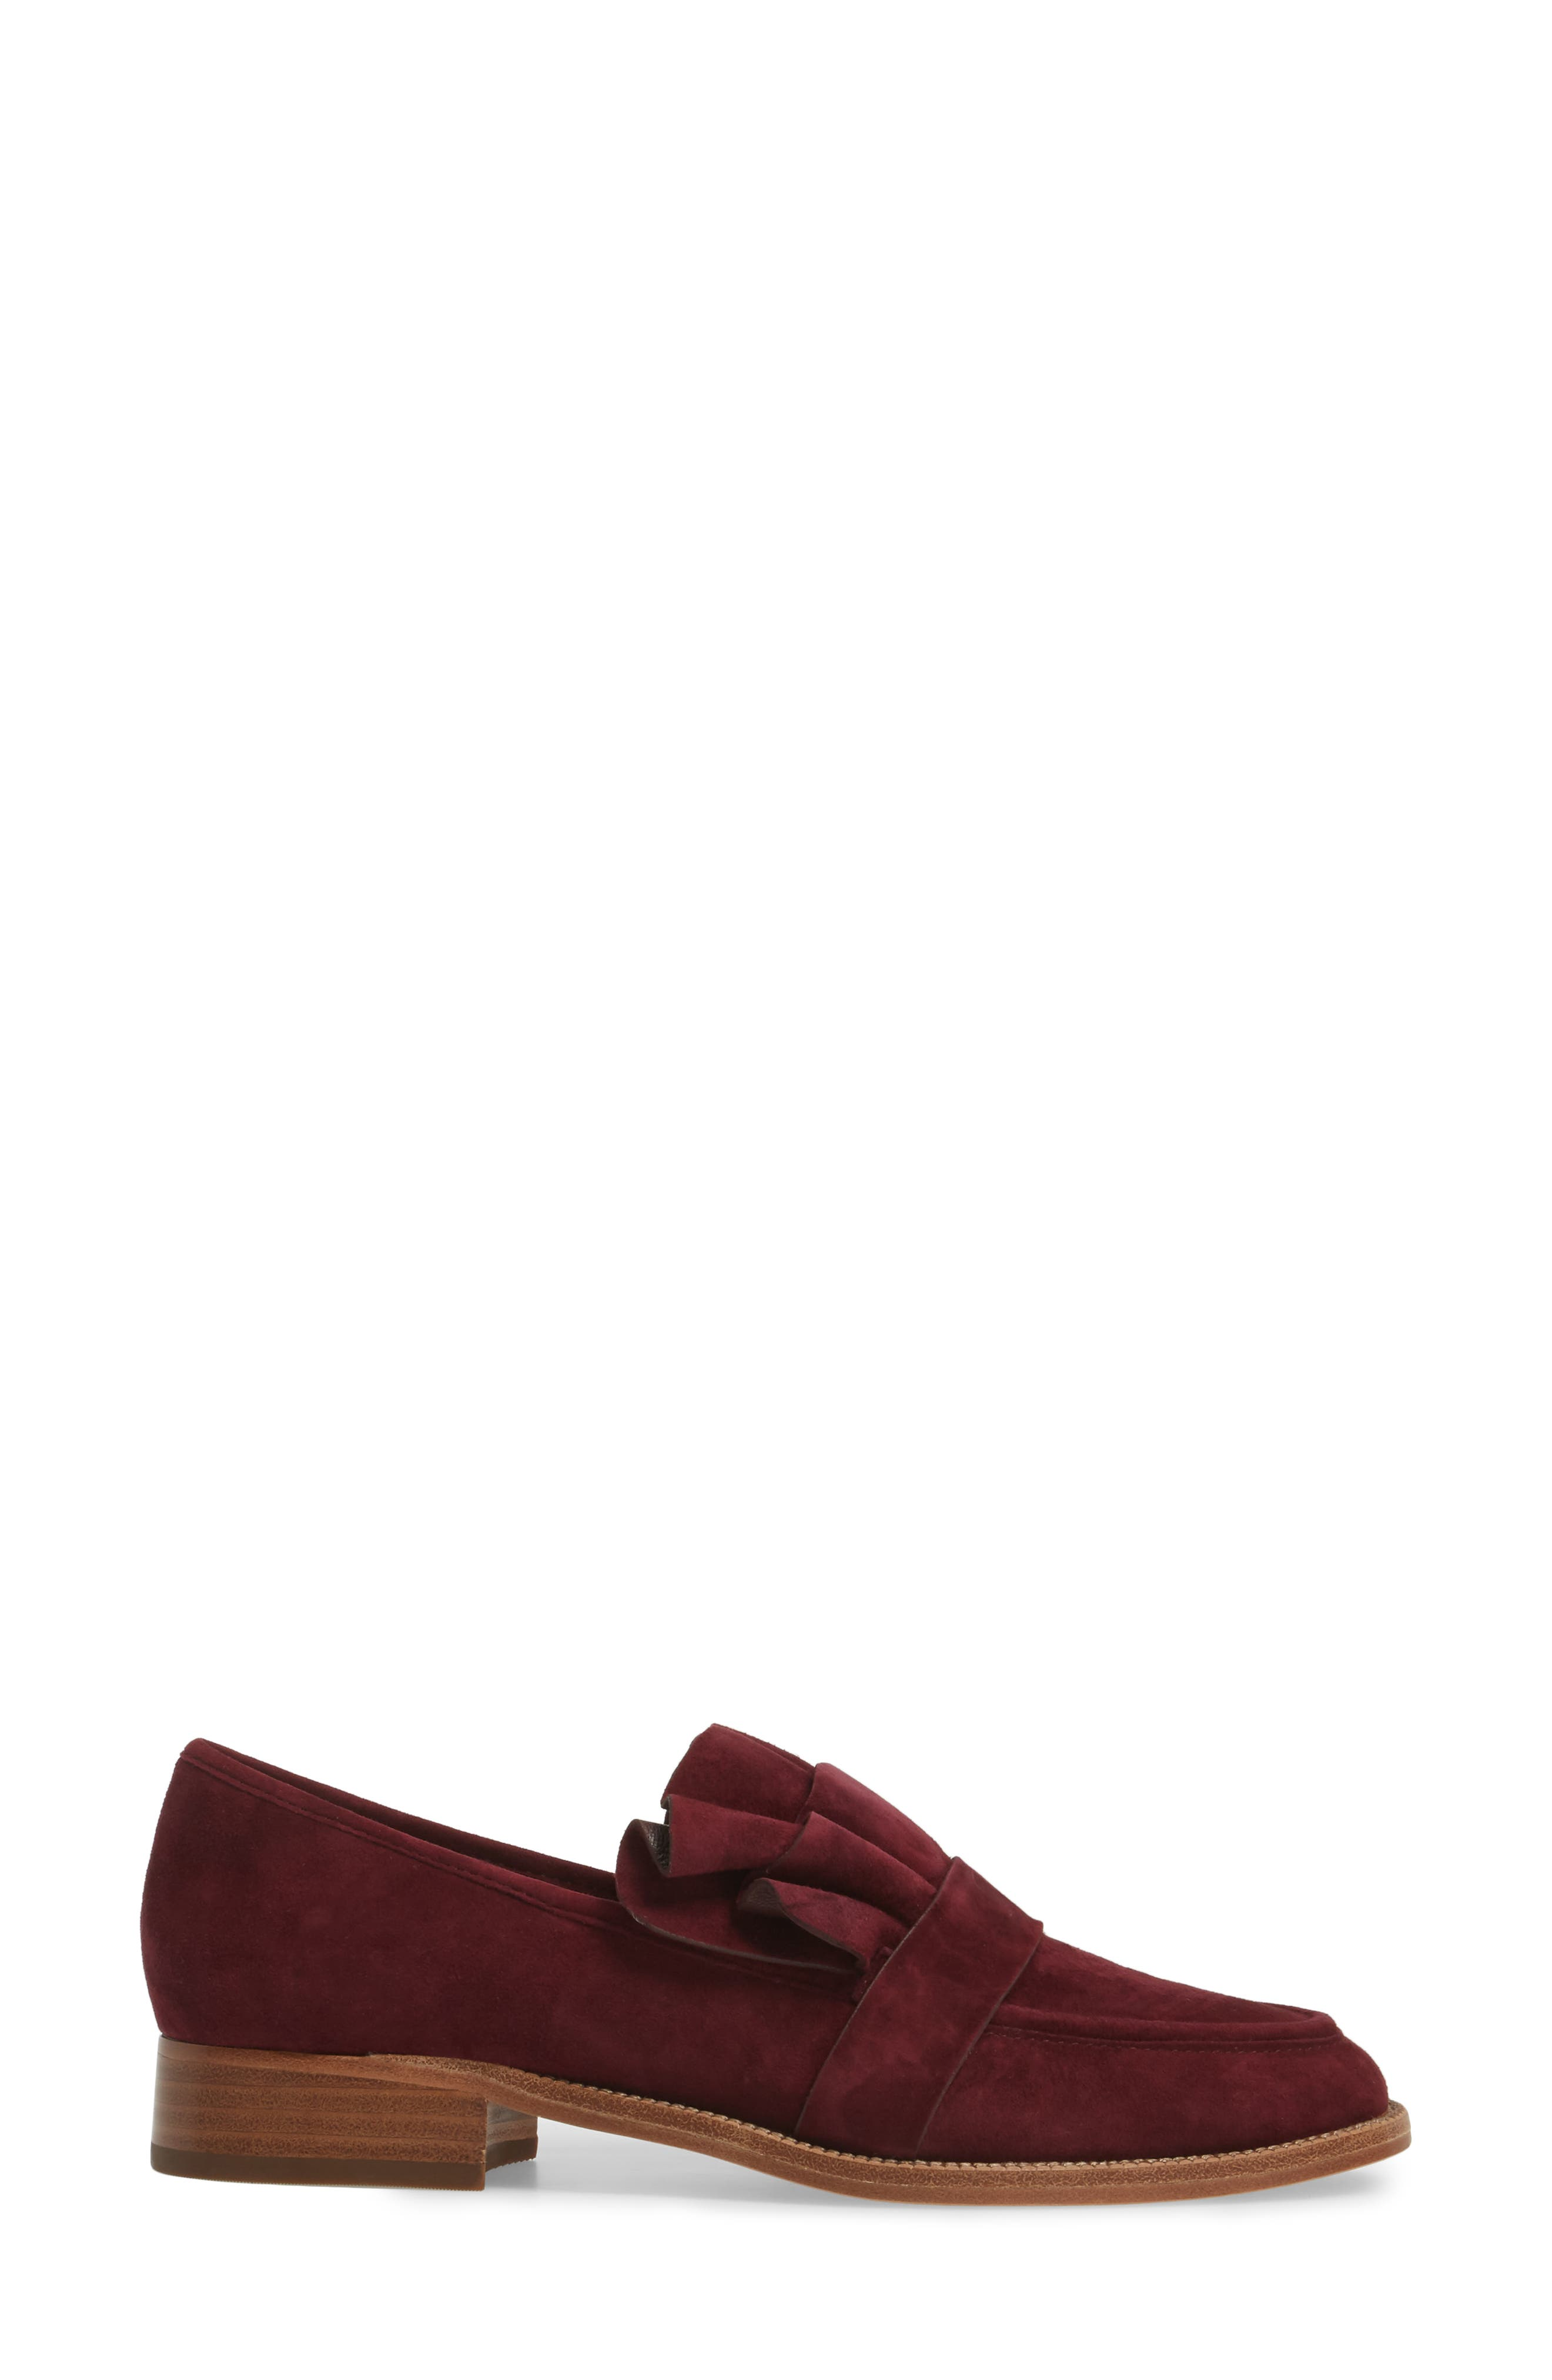 Tenley Ruffled Loafer,                             Alternate thumbnail 3, color,                             Merlot Suede